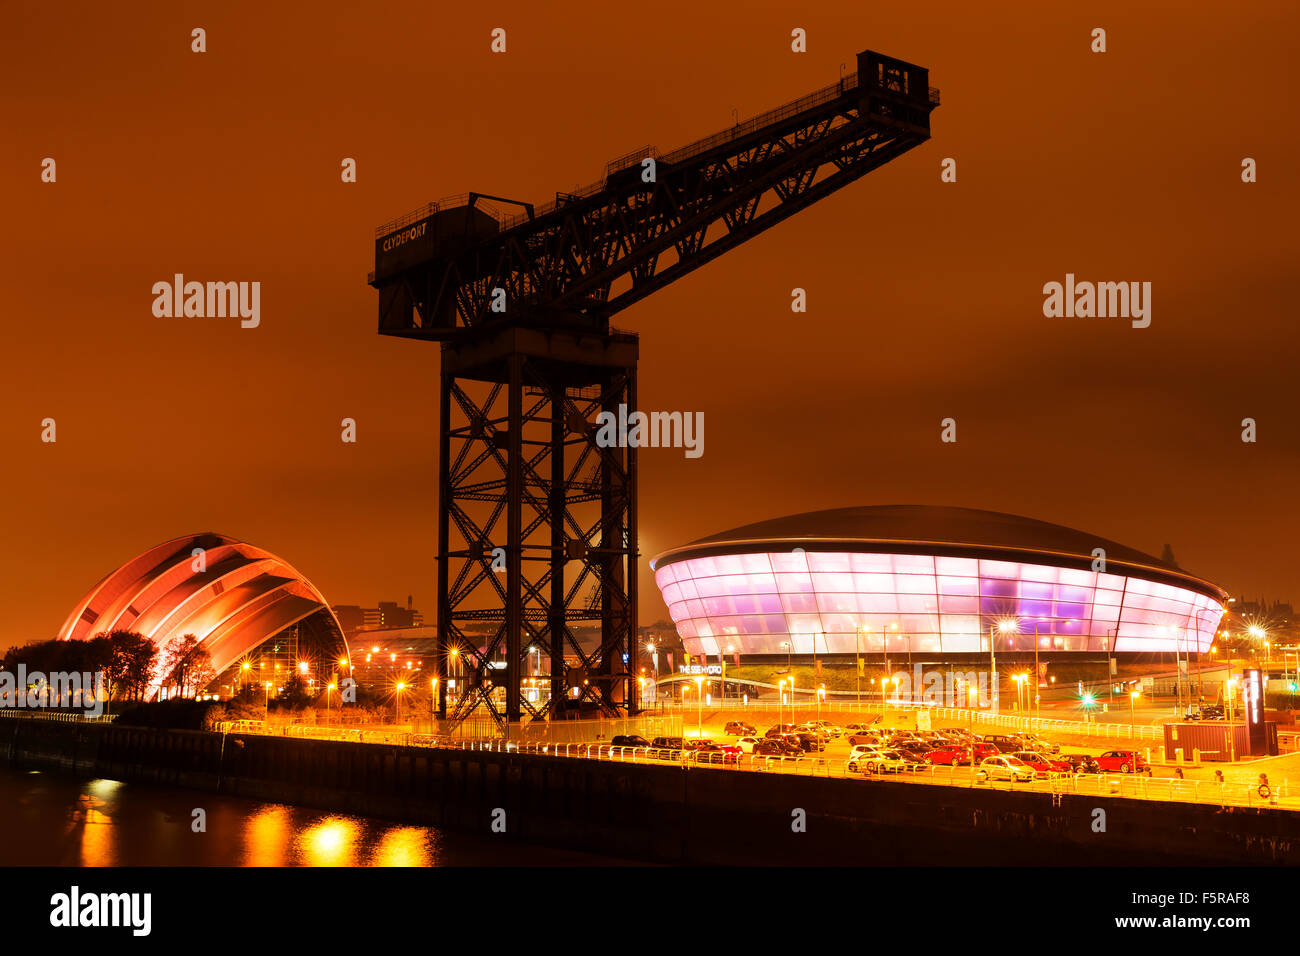 GLASGOW, Ecosse. 27 octobre 2015 : La SSC Hydro Stadium éclairé la nuit sur les rives de la Clyde, Photo Stock